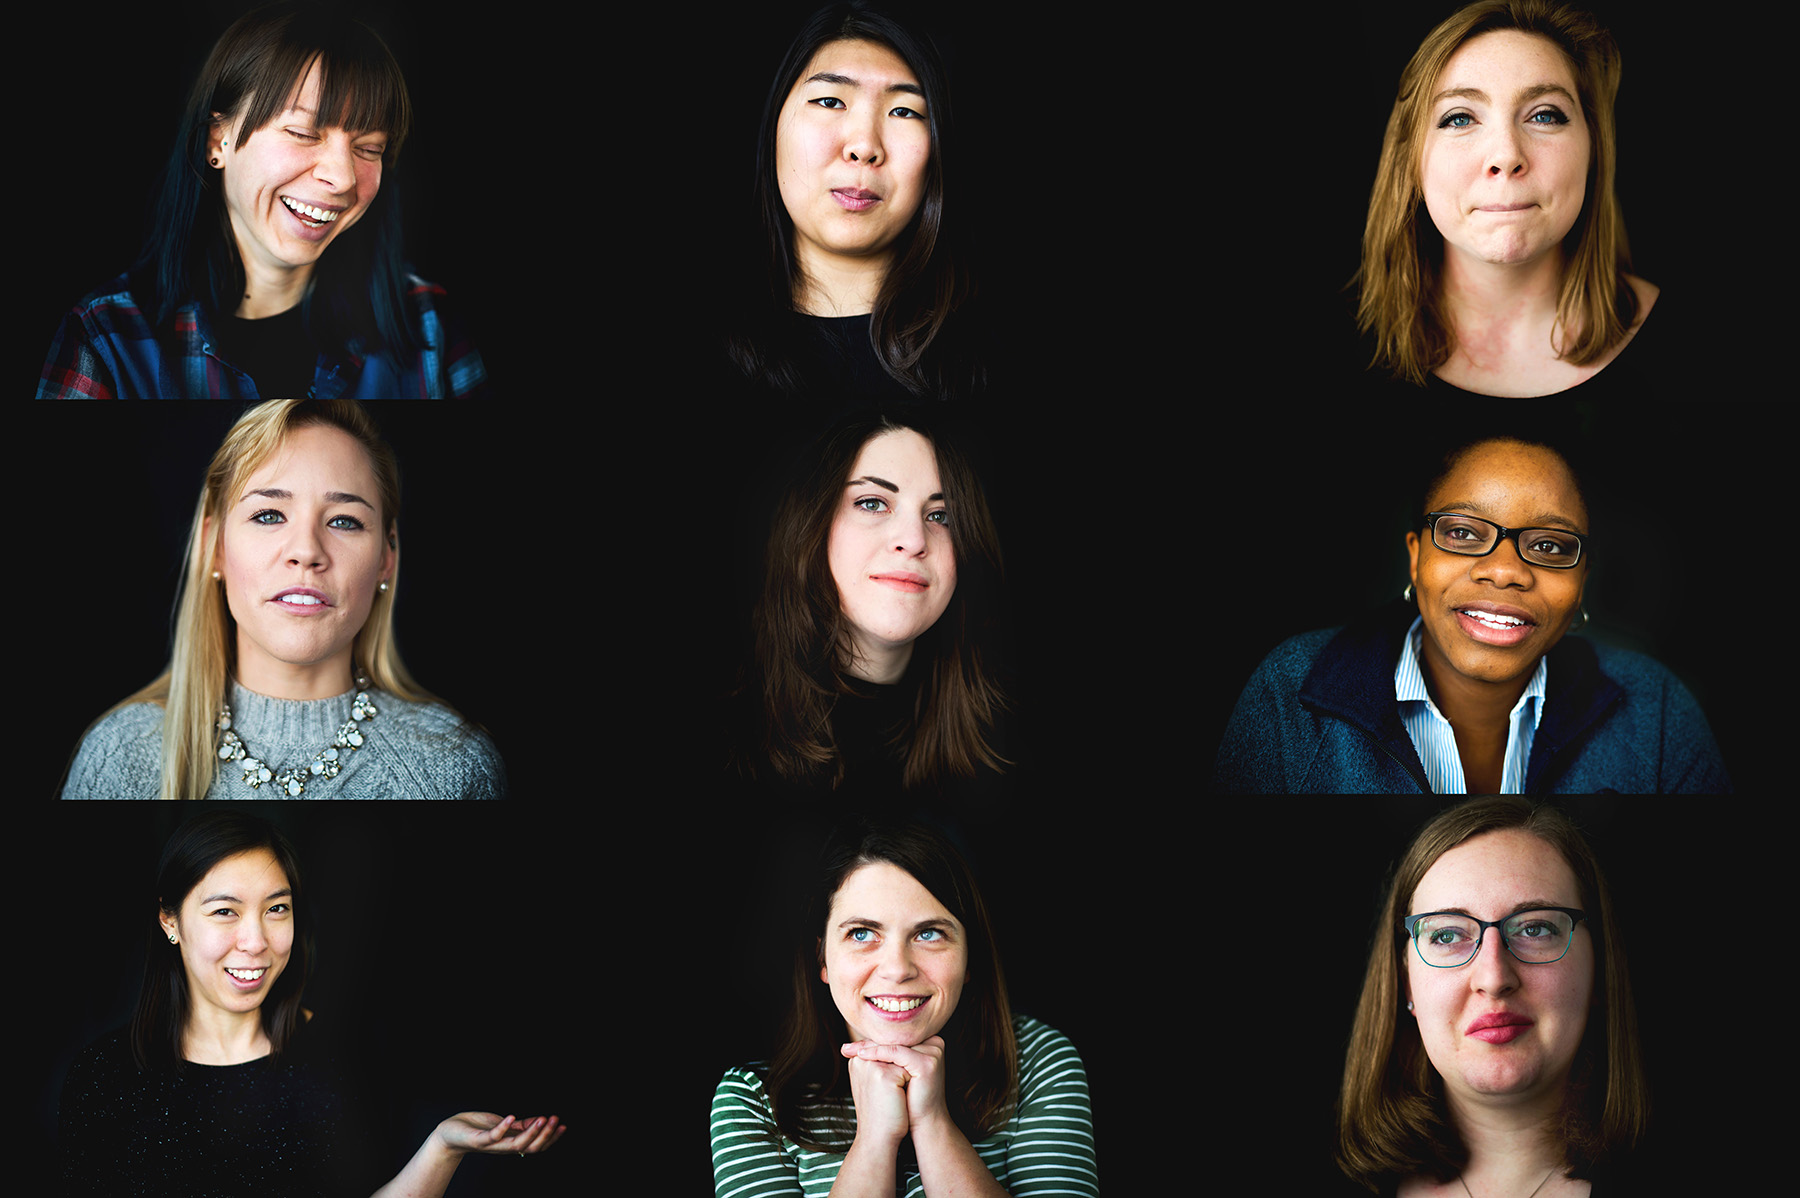 A collection of portraits of female graduate students.